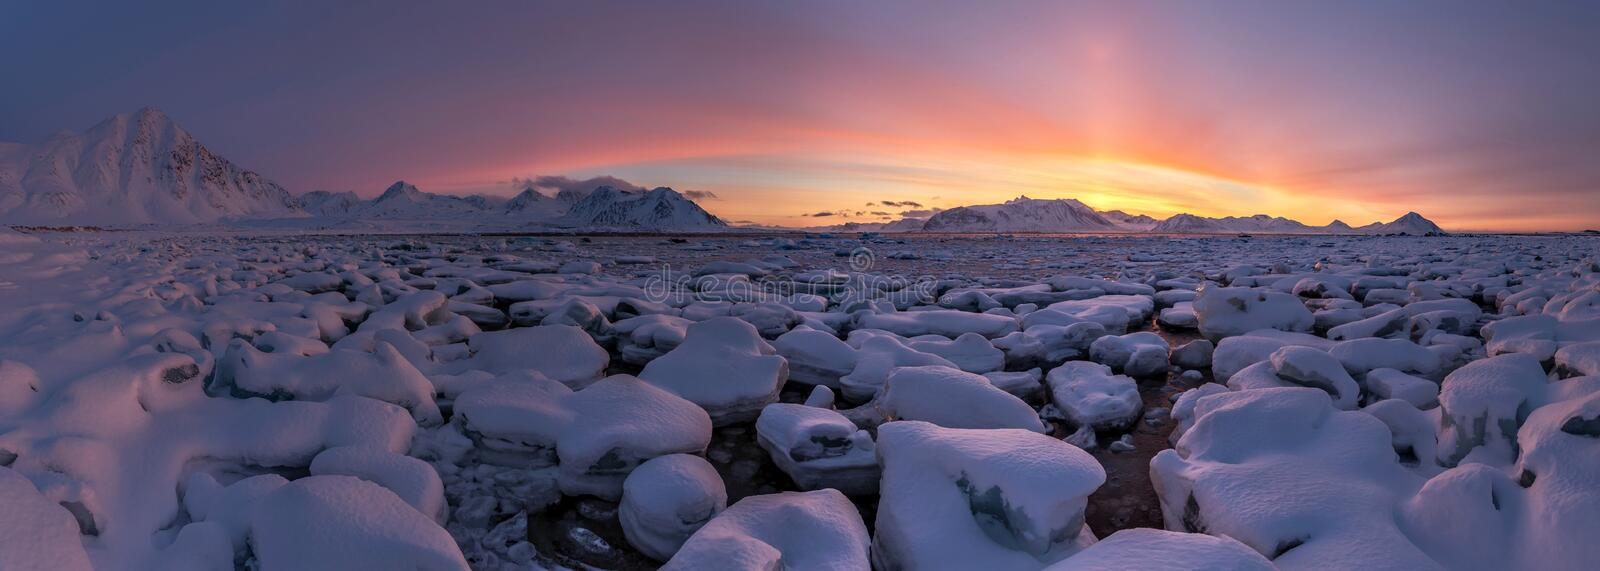 Arctic PANORAMA - golden hour - 3 minutes before the sunrise royalty free stock photo